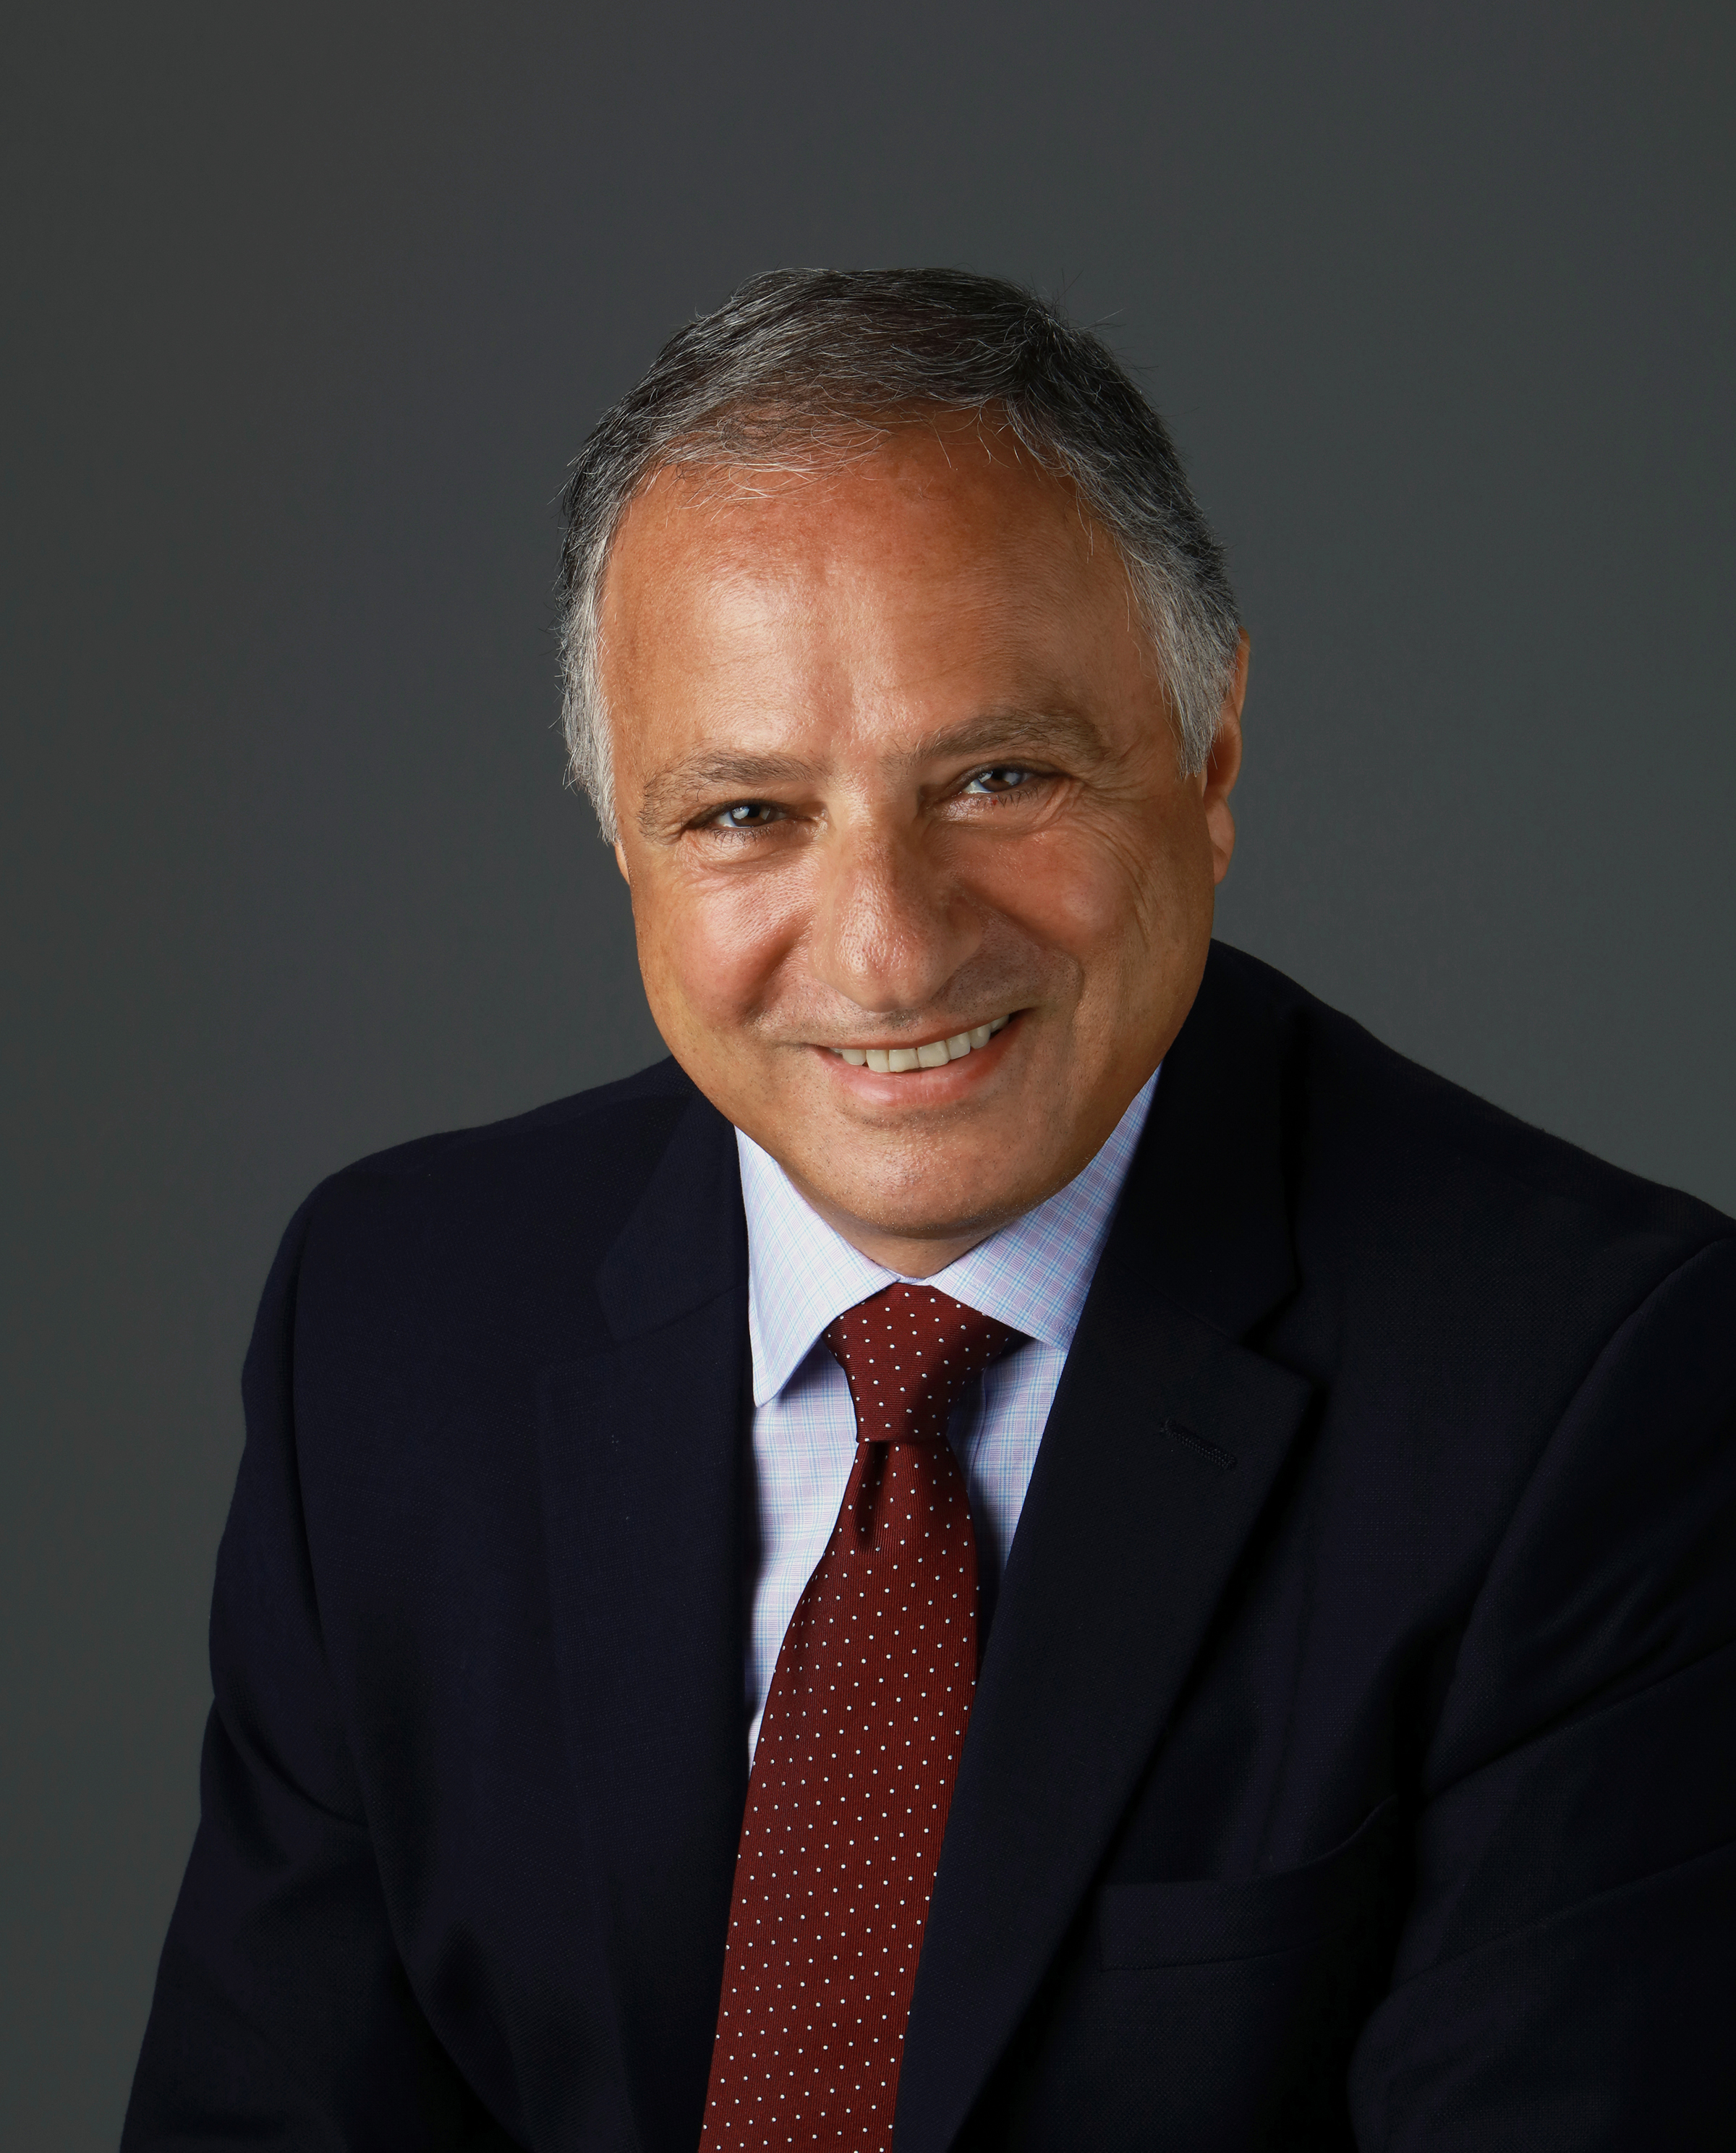 Habeeb Habeeb - Official Portrait, 2018